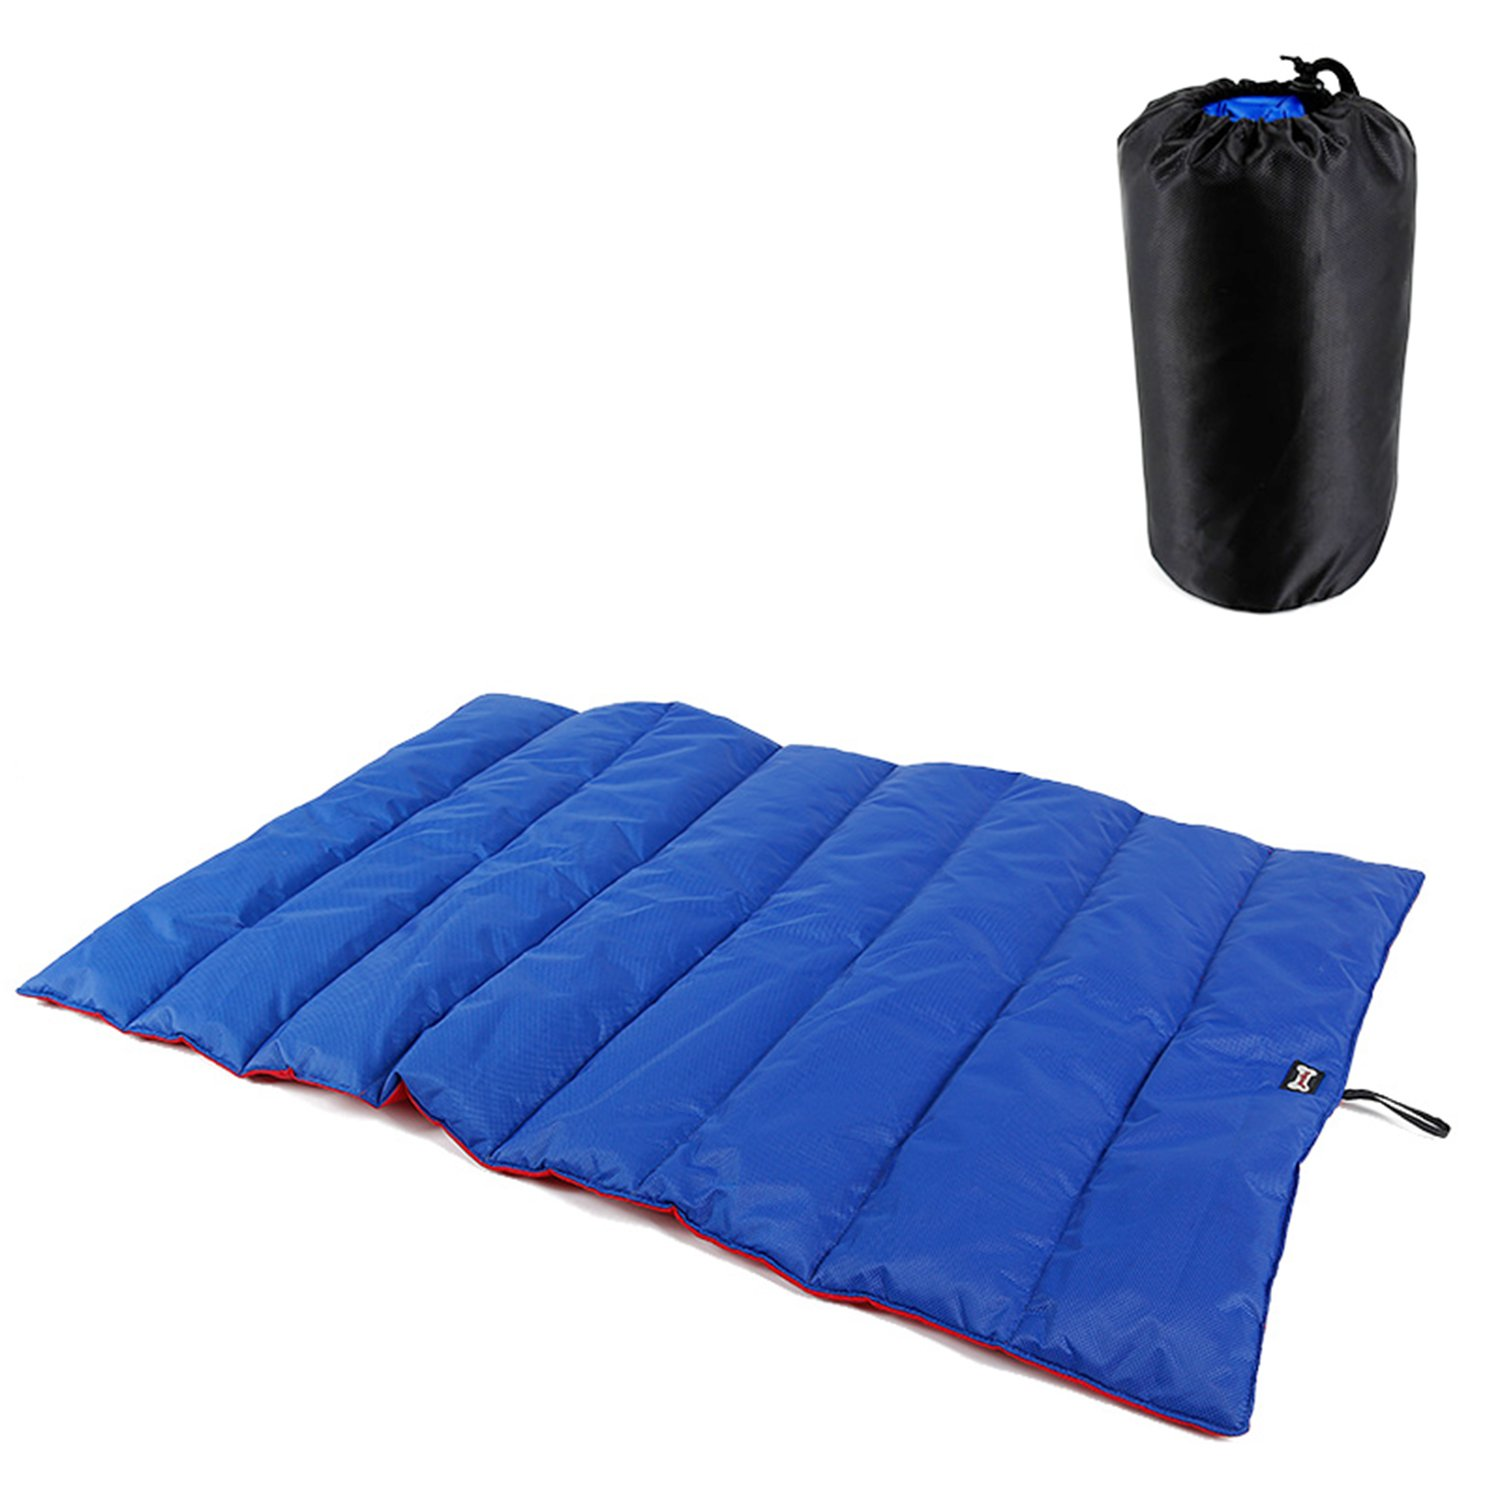 Reversible Two-Tone Outdoor Pets Bed Mat,Portable Water-Resistant Dog Mat Crate Kennel Pad Perfect for Travel, Floors, Car Seats, Lawn (bluee&Red)